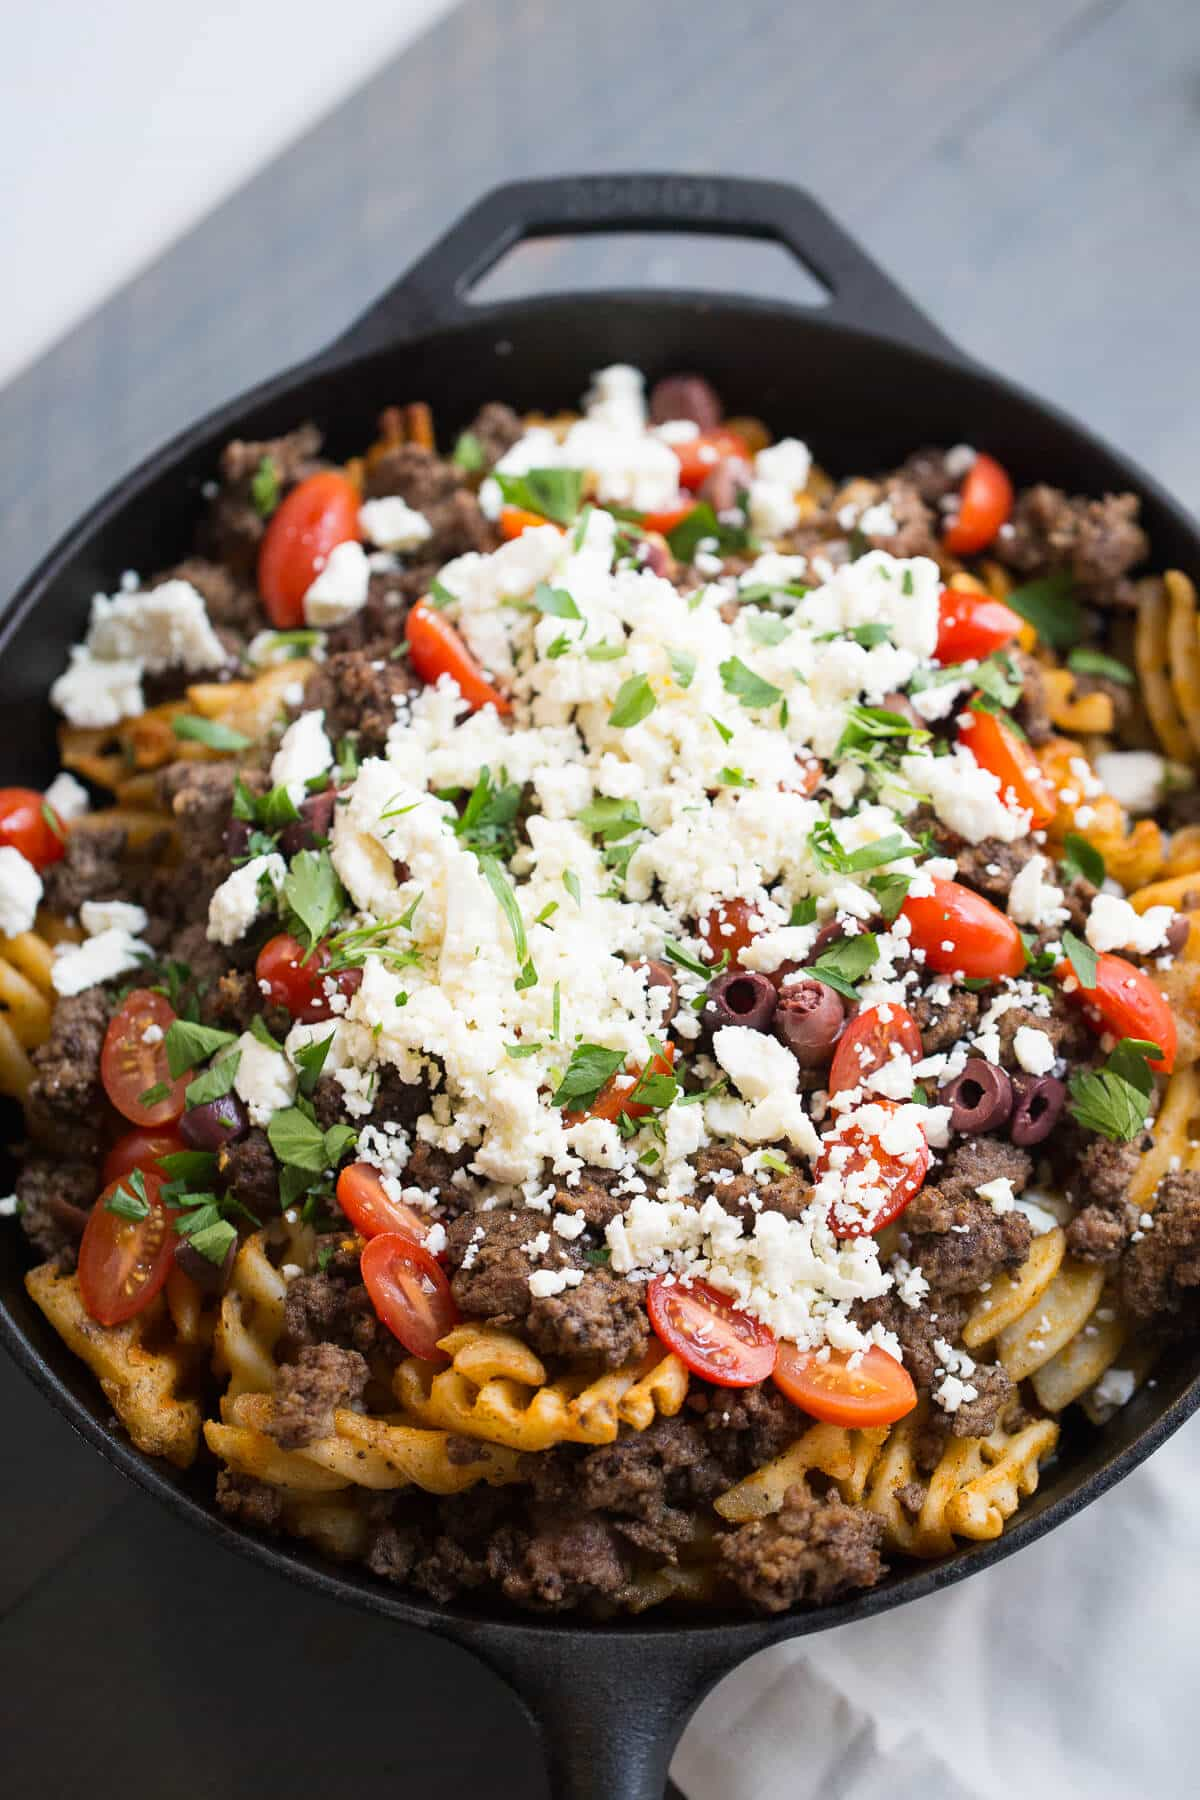 These Greek Fries can be served as a meal with a salad or as an appetizer. Great Greek flavors are present in every bite!